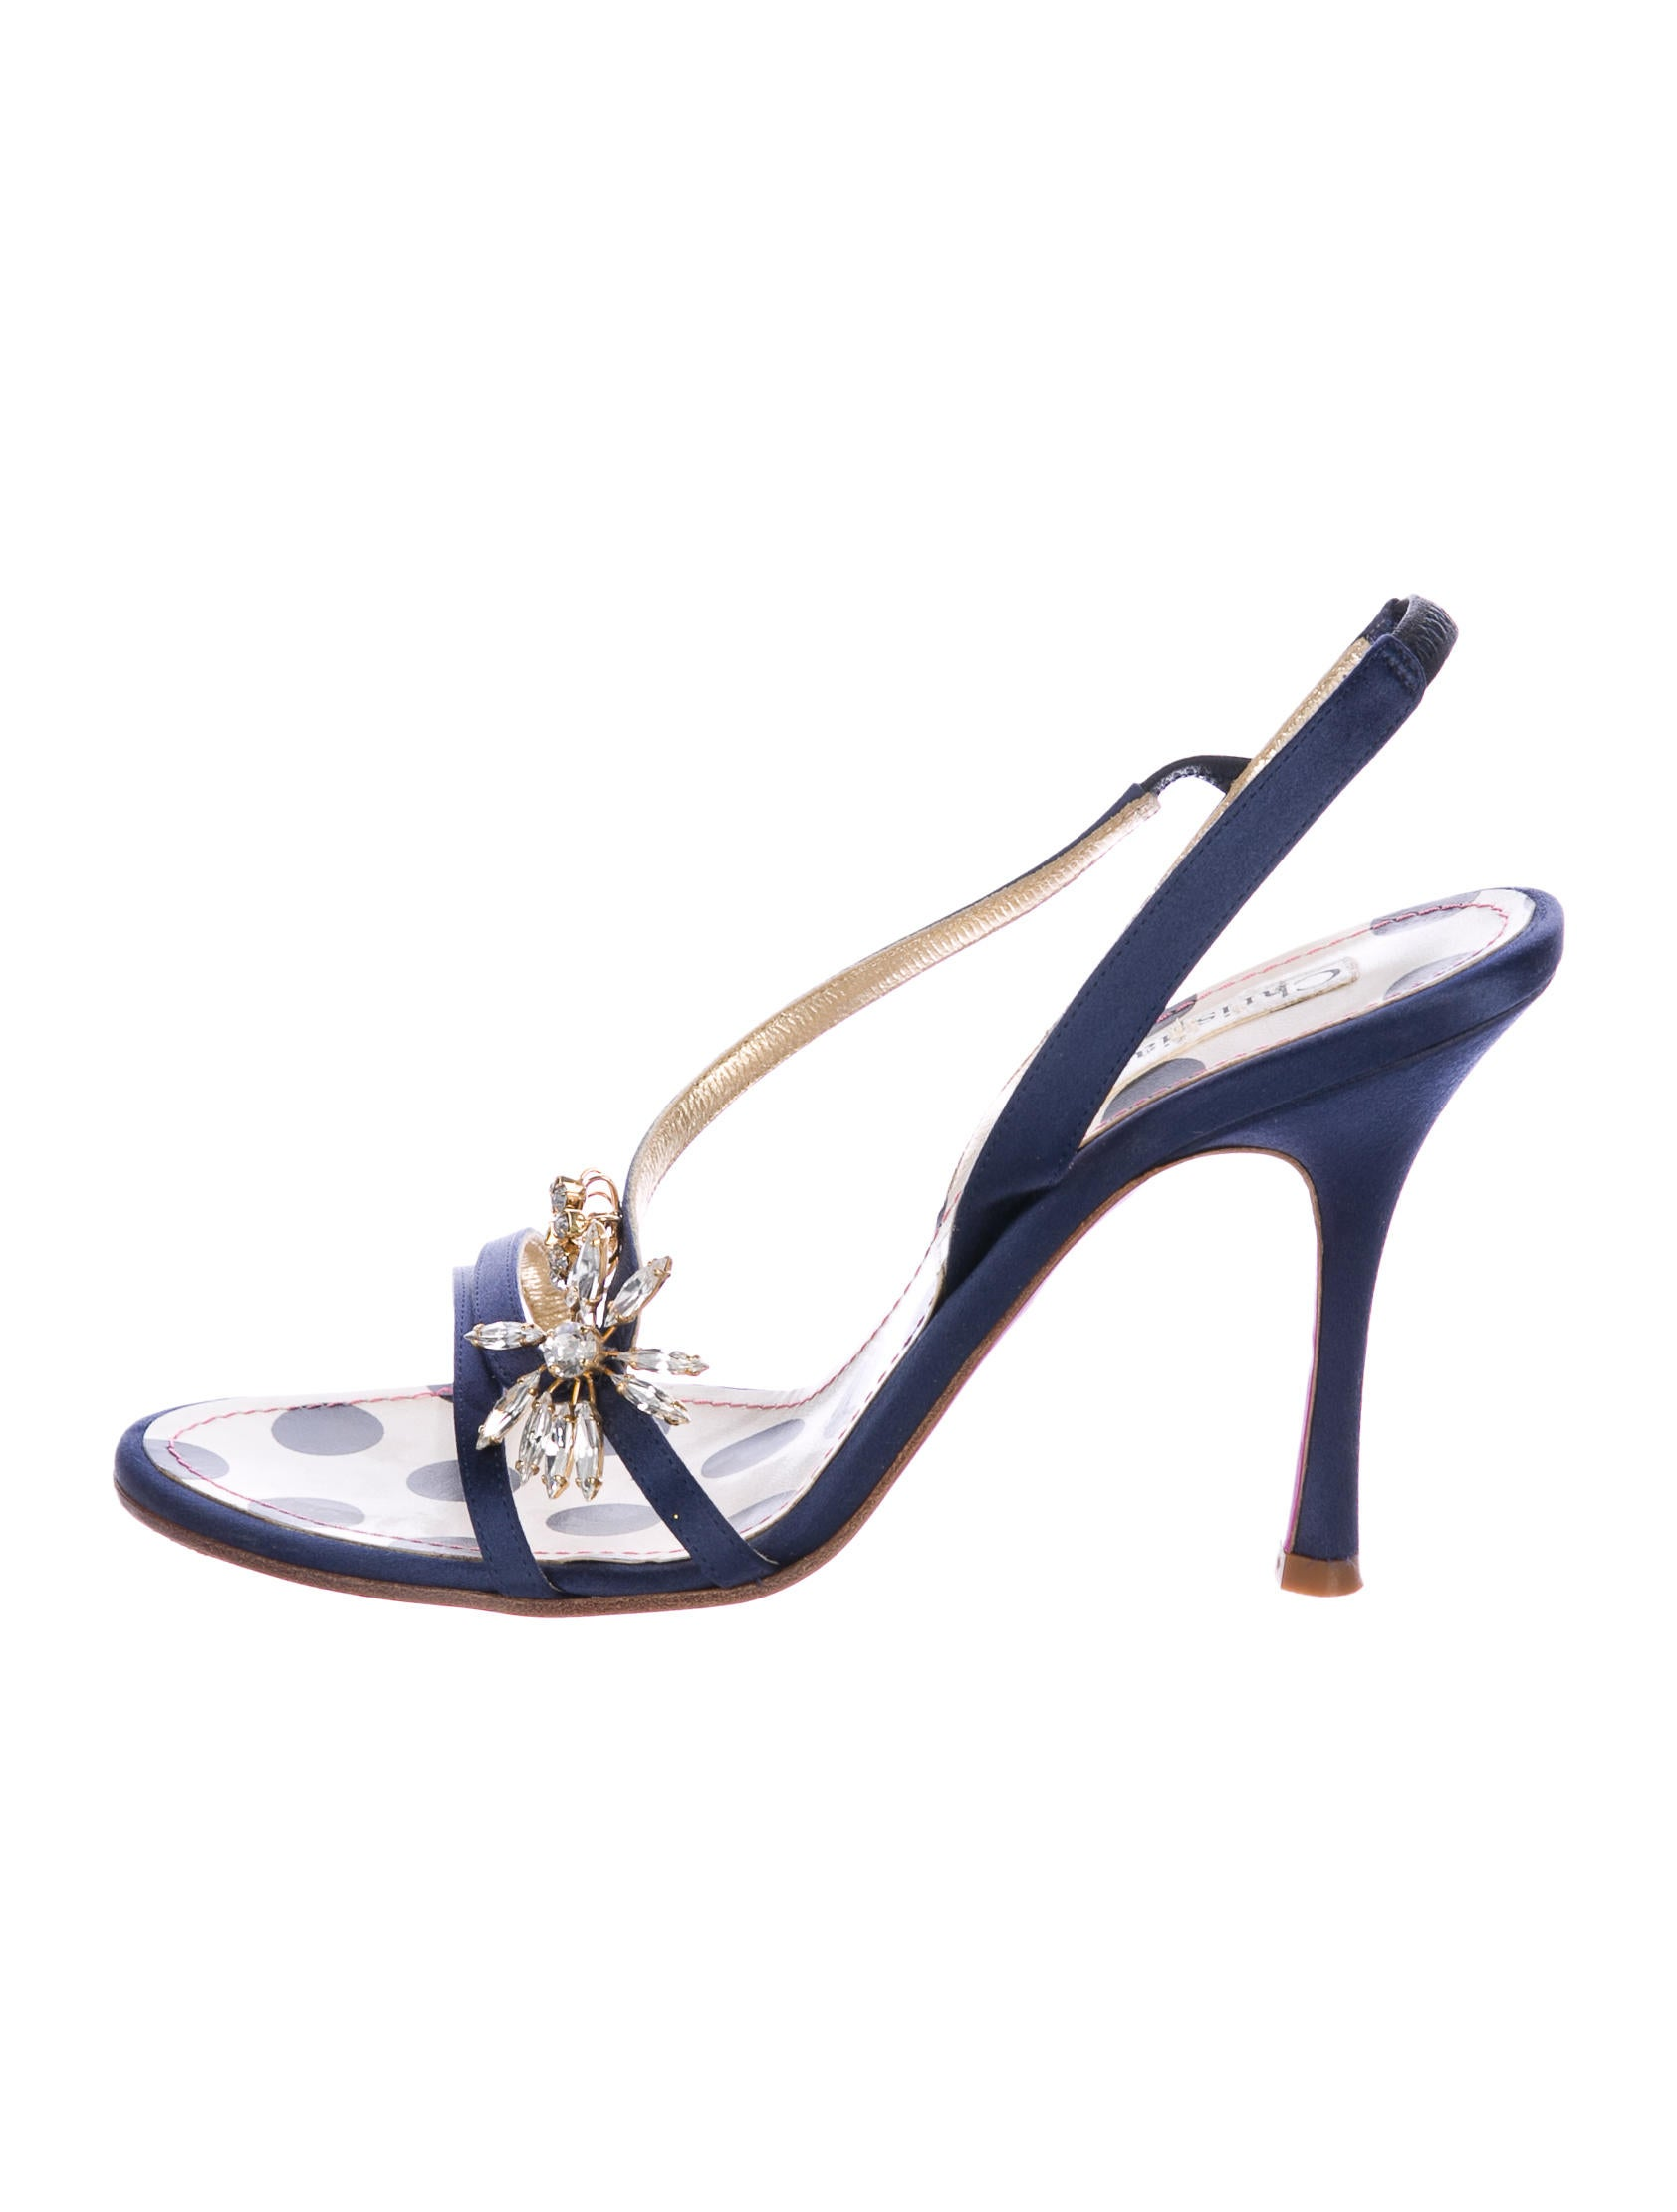 free shipping great deals Christian Lacroix Embellished Satin Pumps ebay for sale 540wFH8HA3